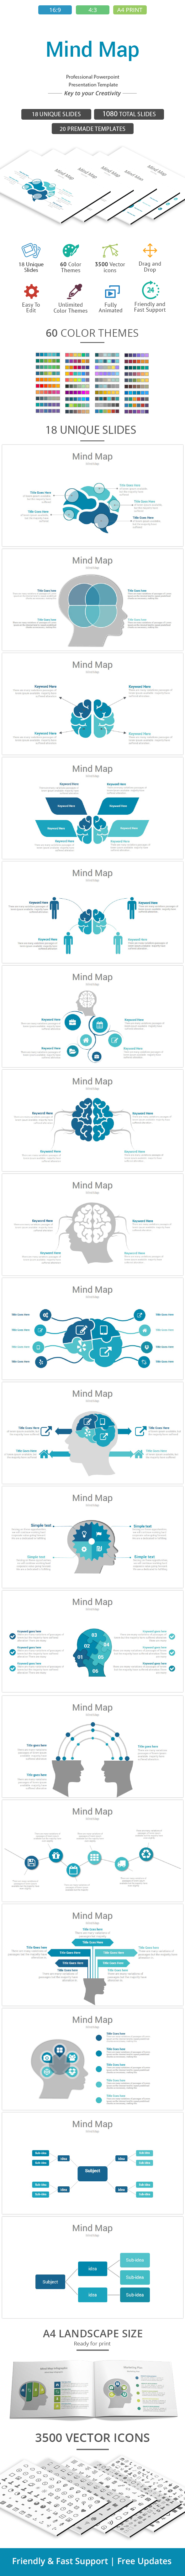 mind map powerpoint presentation templaterainstudio | graphicriver, Powerpoint templates